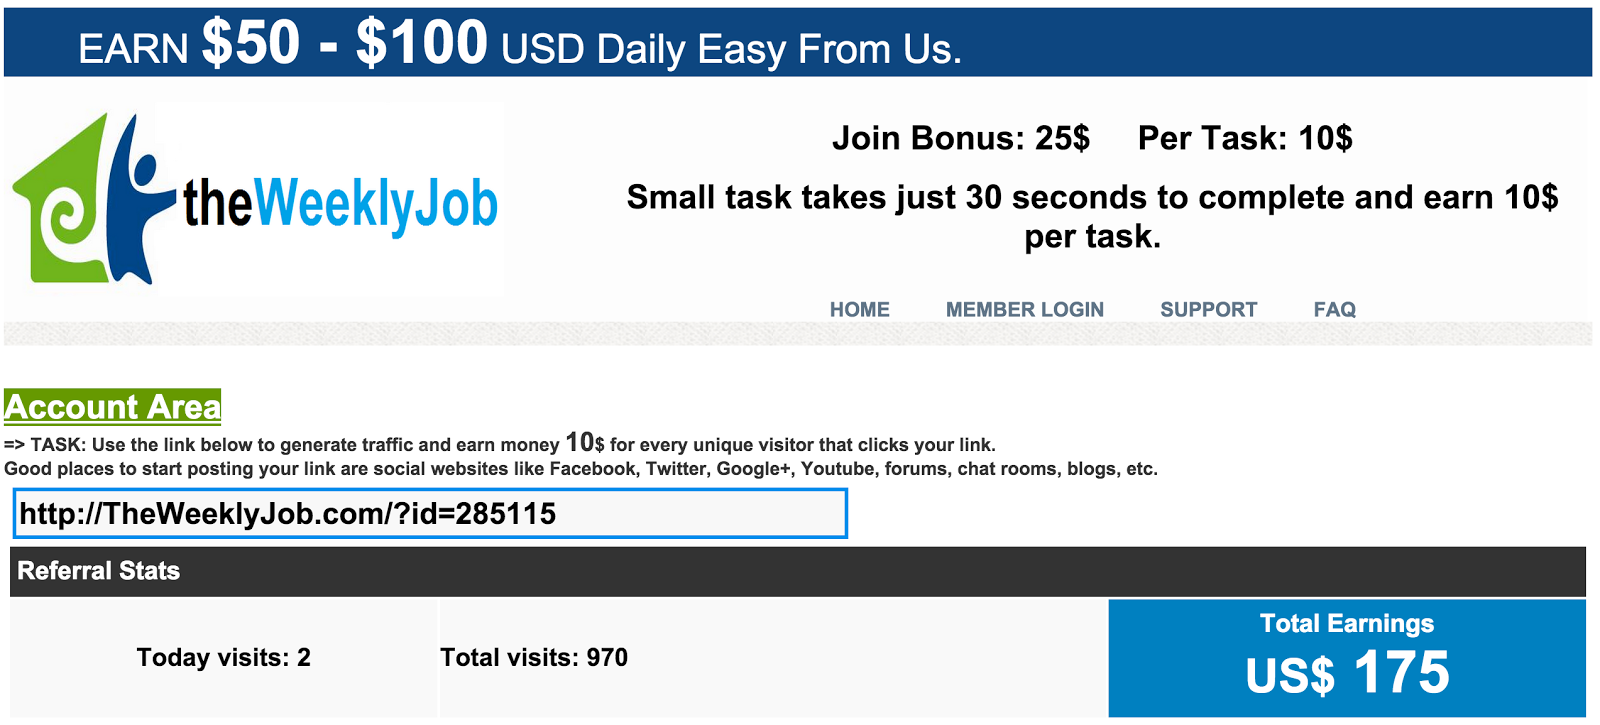 image Make Money Online Experiment- The Weekly Job Earnings Screen Shot Nov 24